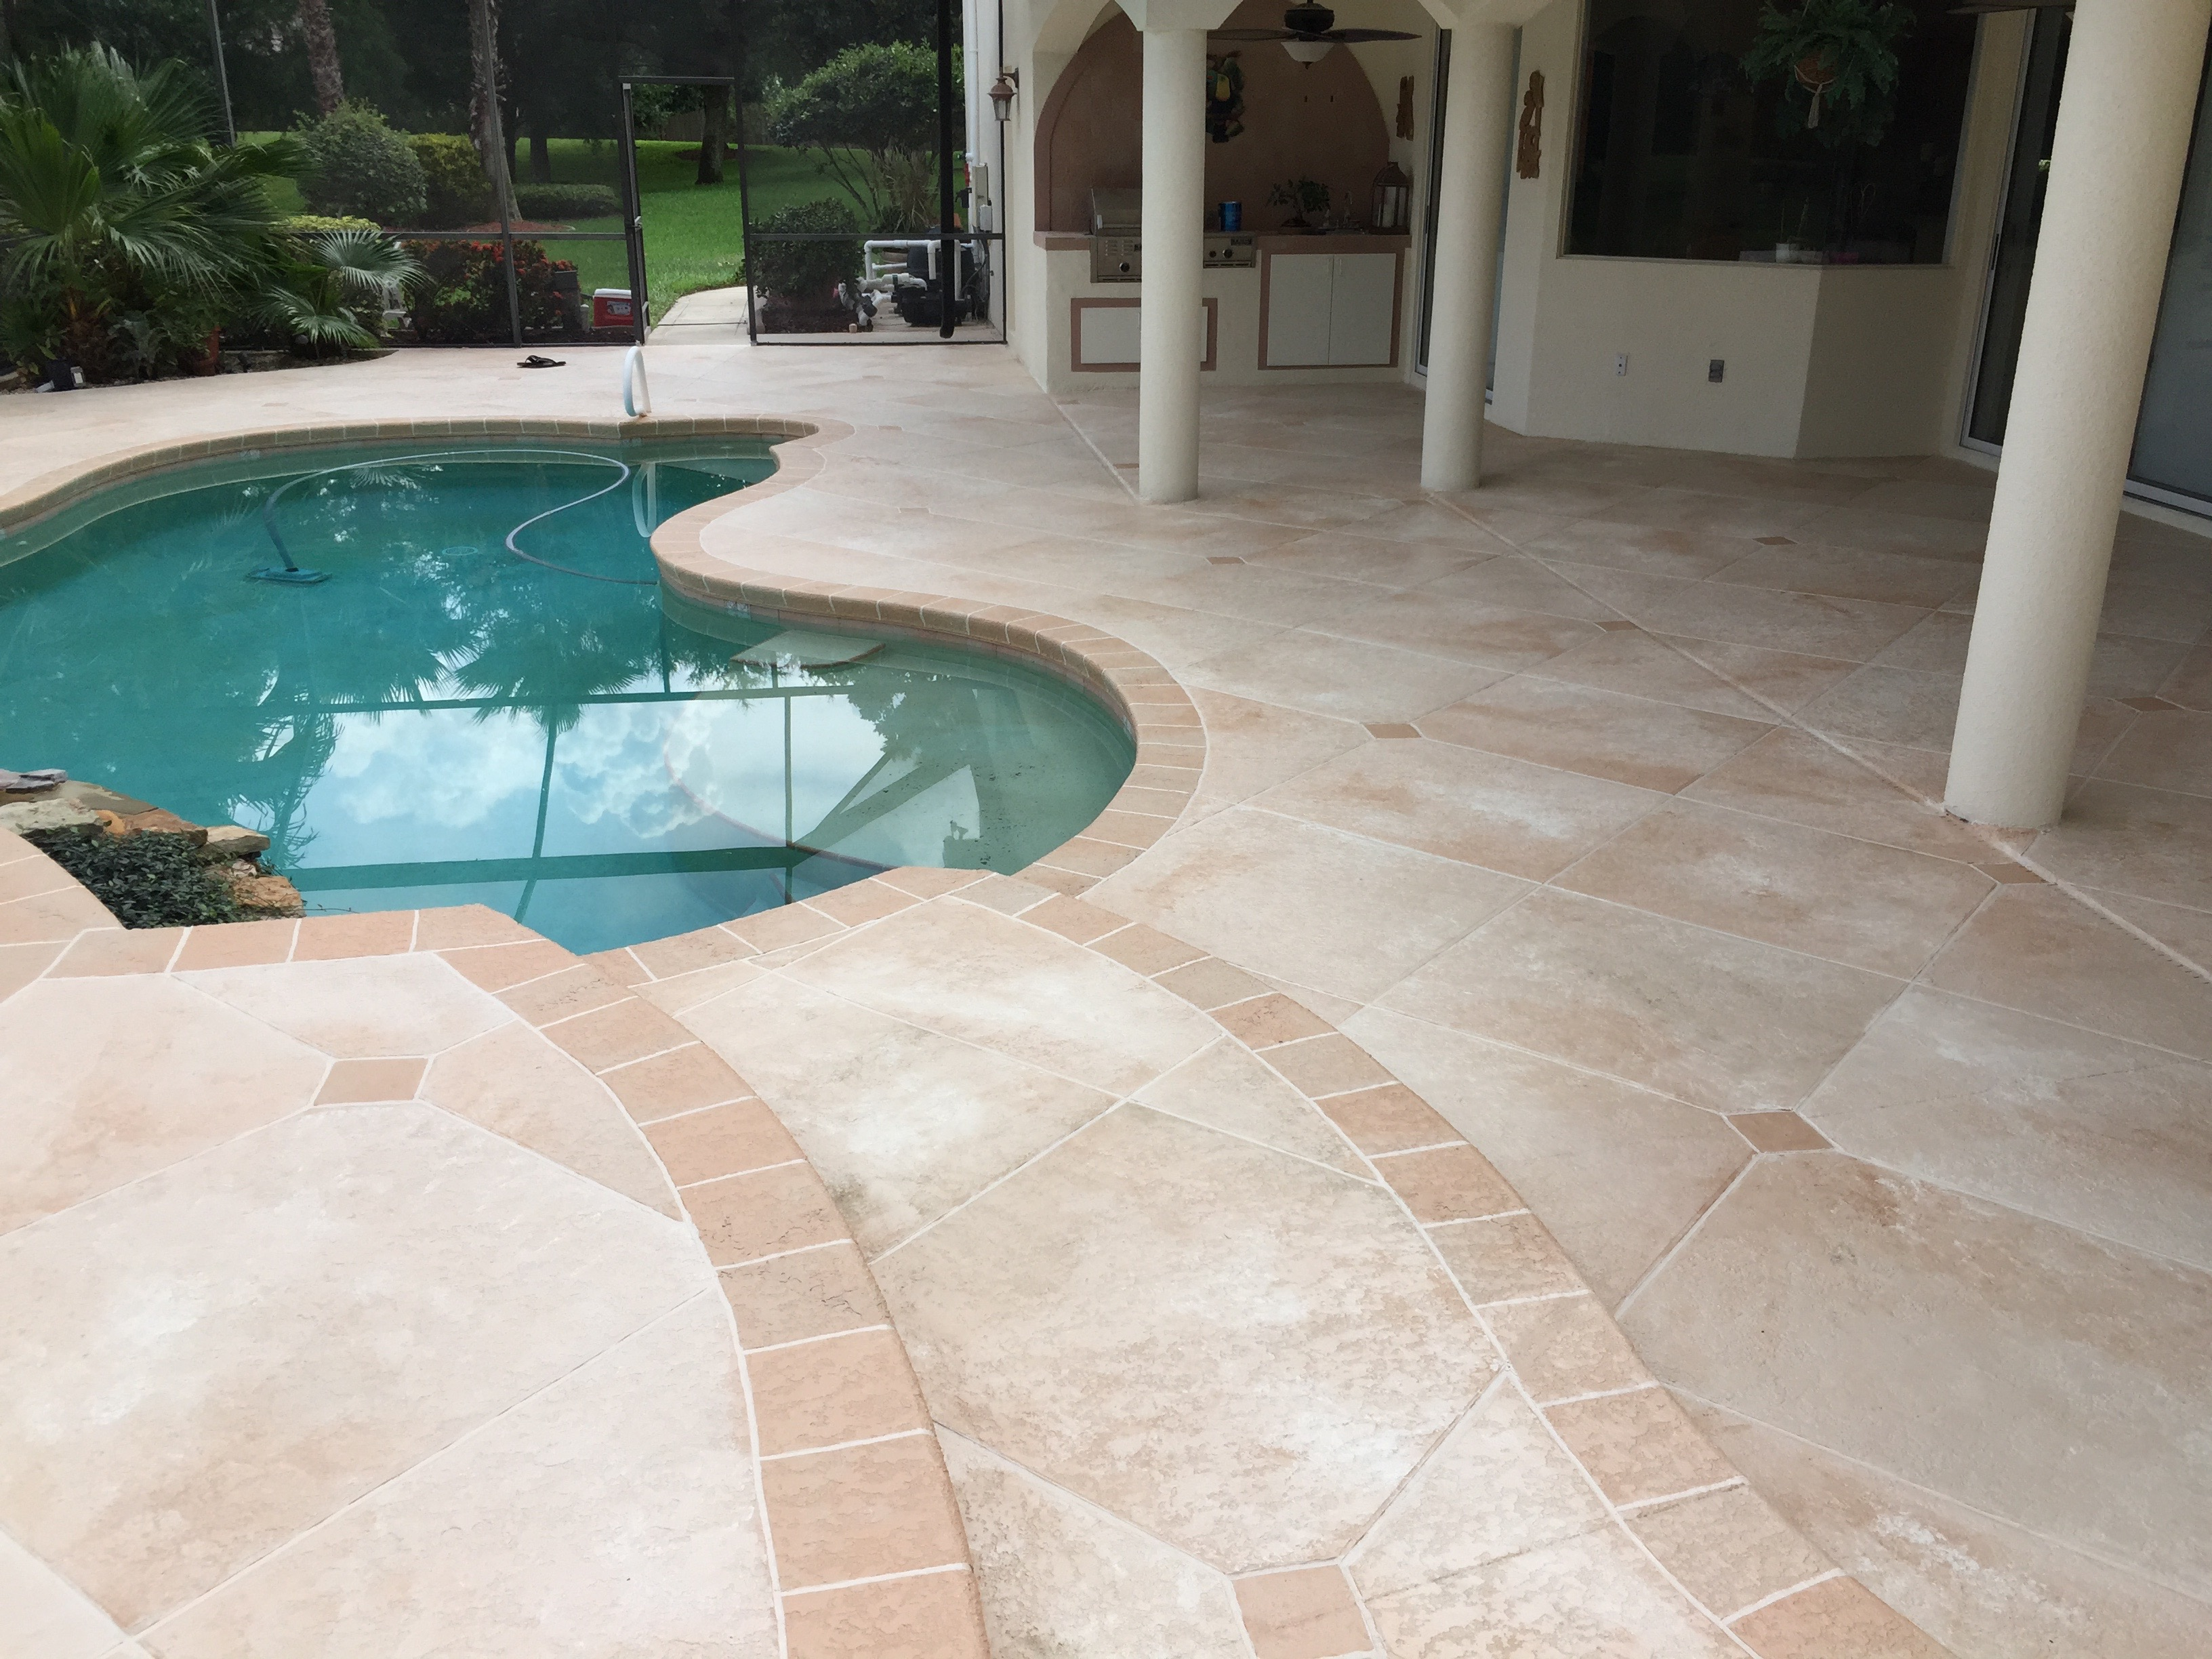 Tile Over Concrete Pool Deck Concrete Designs Florida  Travertine Pool Deck Florida